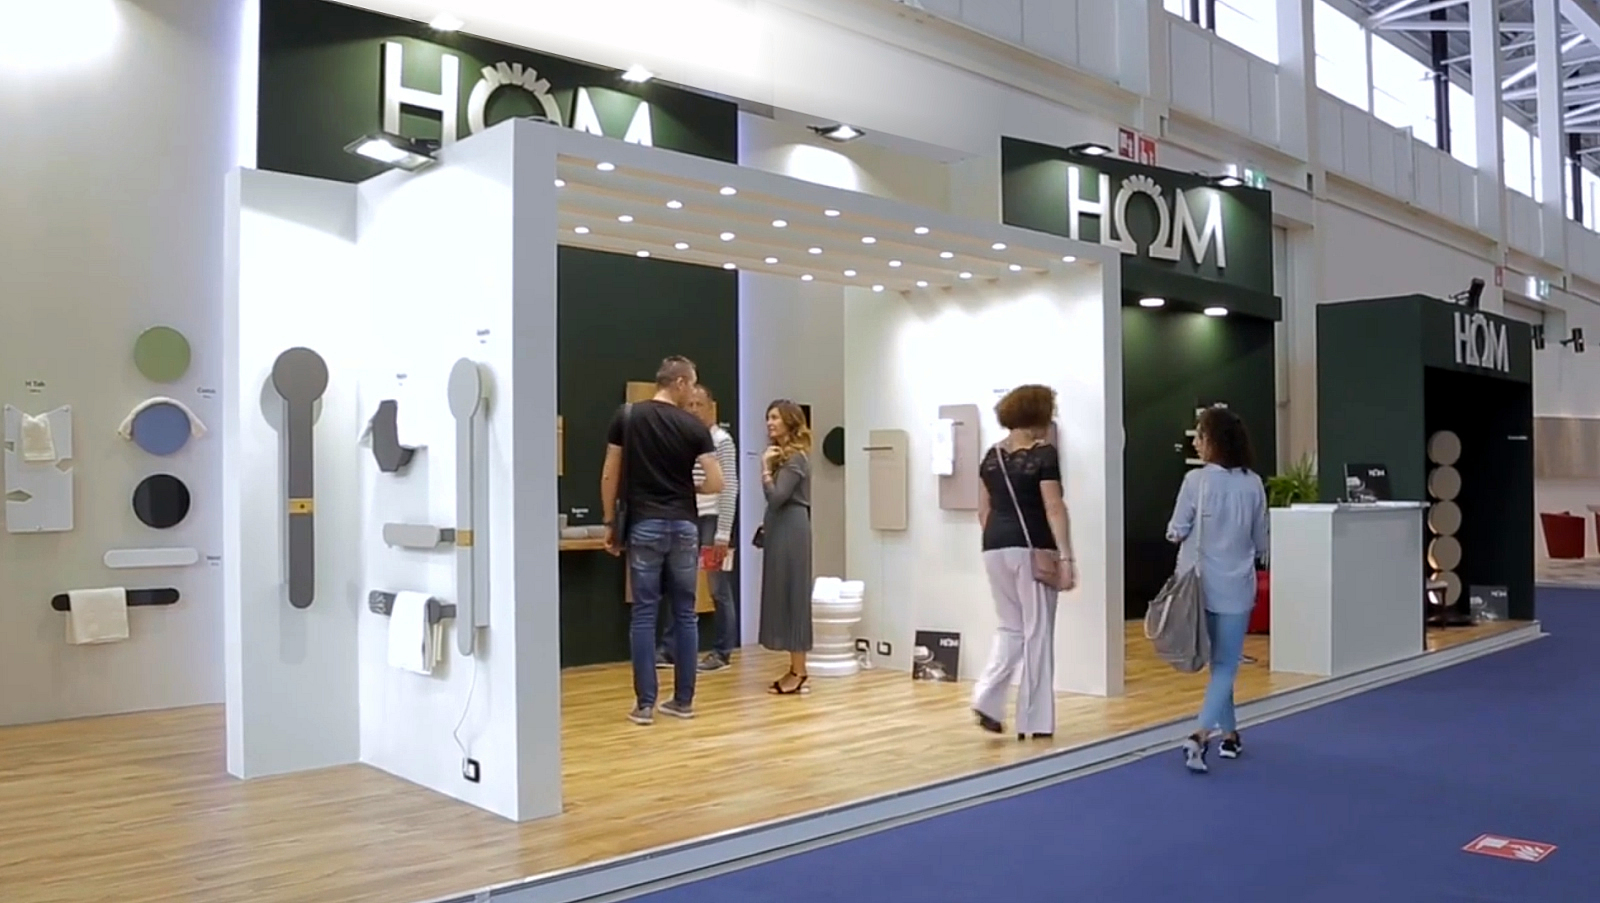 HOM participated in the 2019 edition of Cersaie